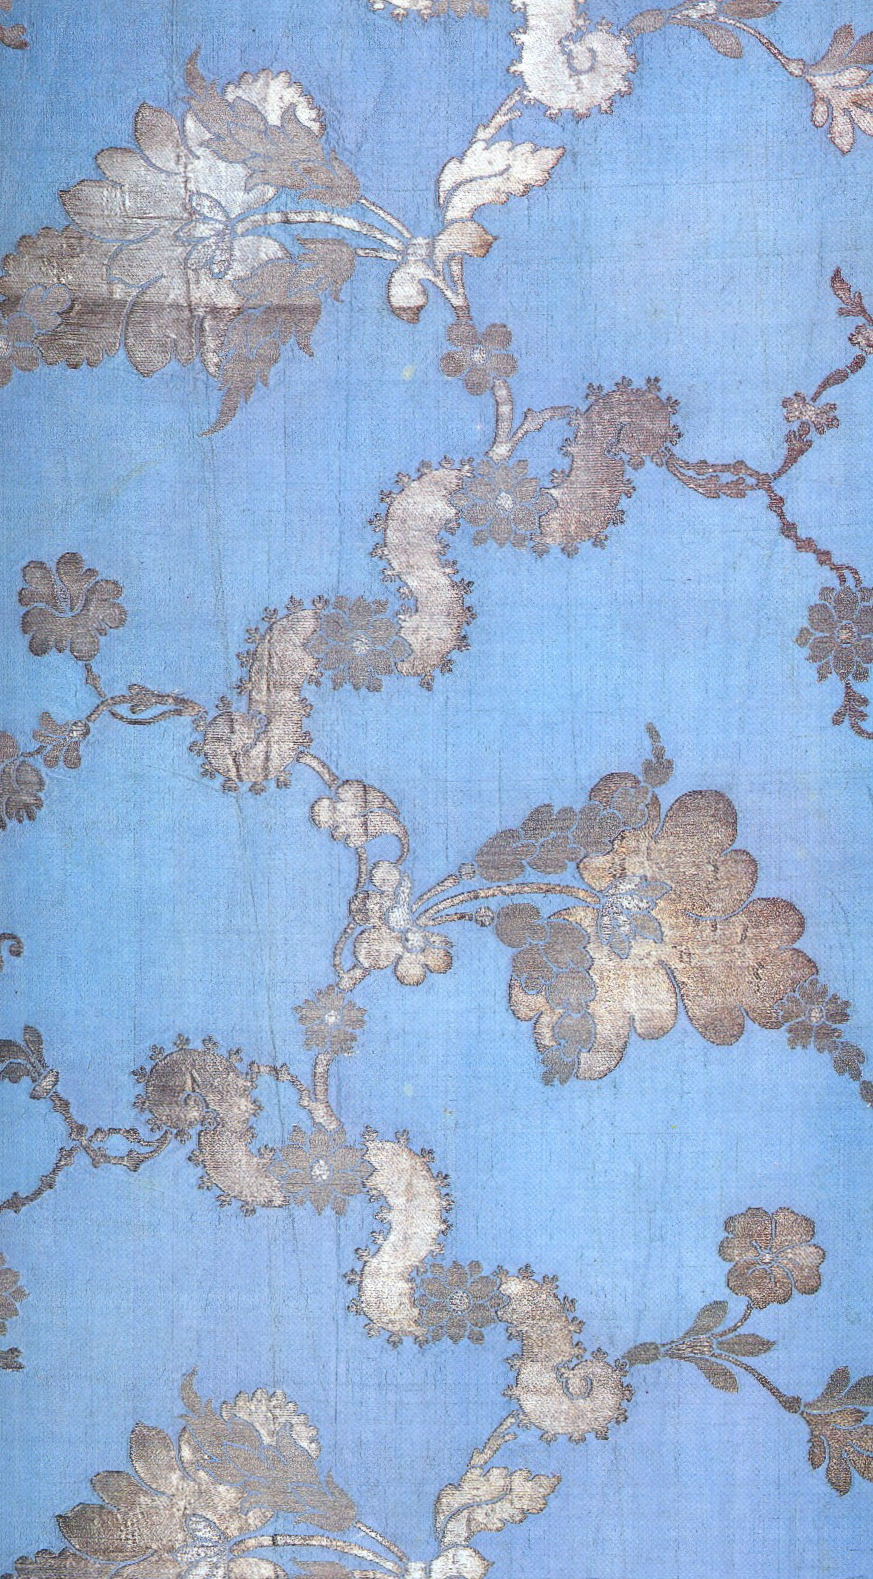 Anna-Maria-Garthwaite-blue-and-silver-brocaded-silk-wallpaper-wp423692